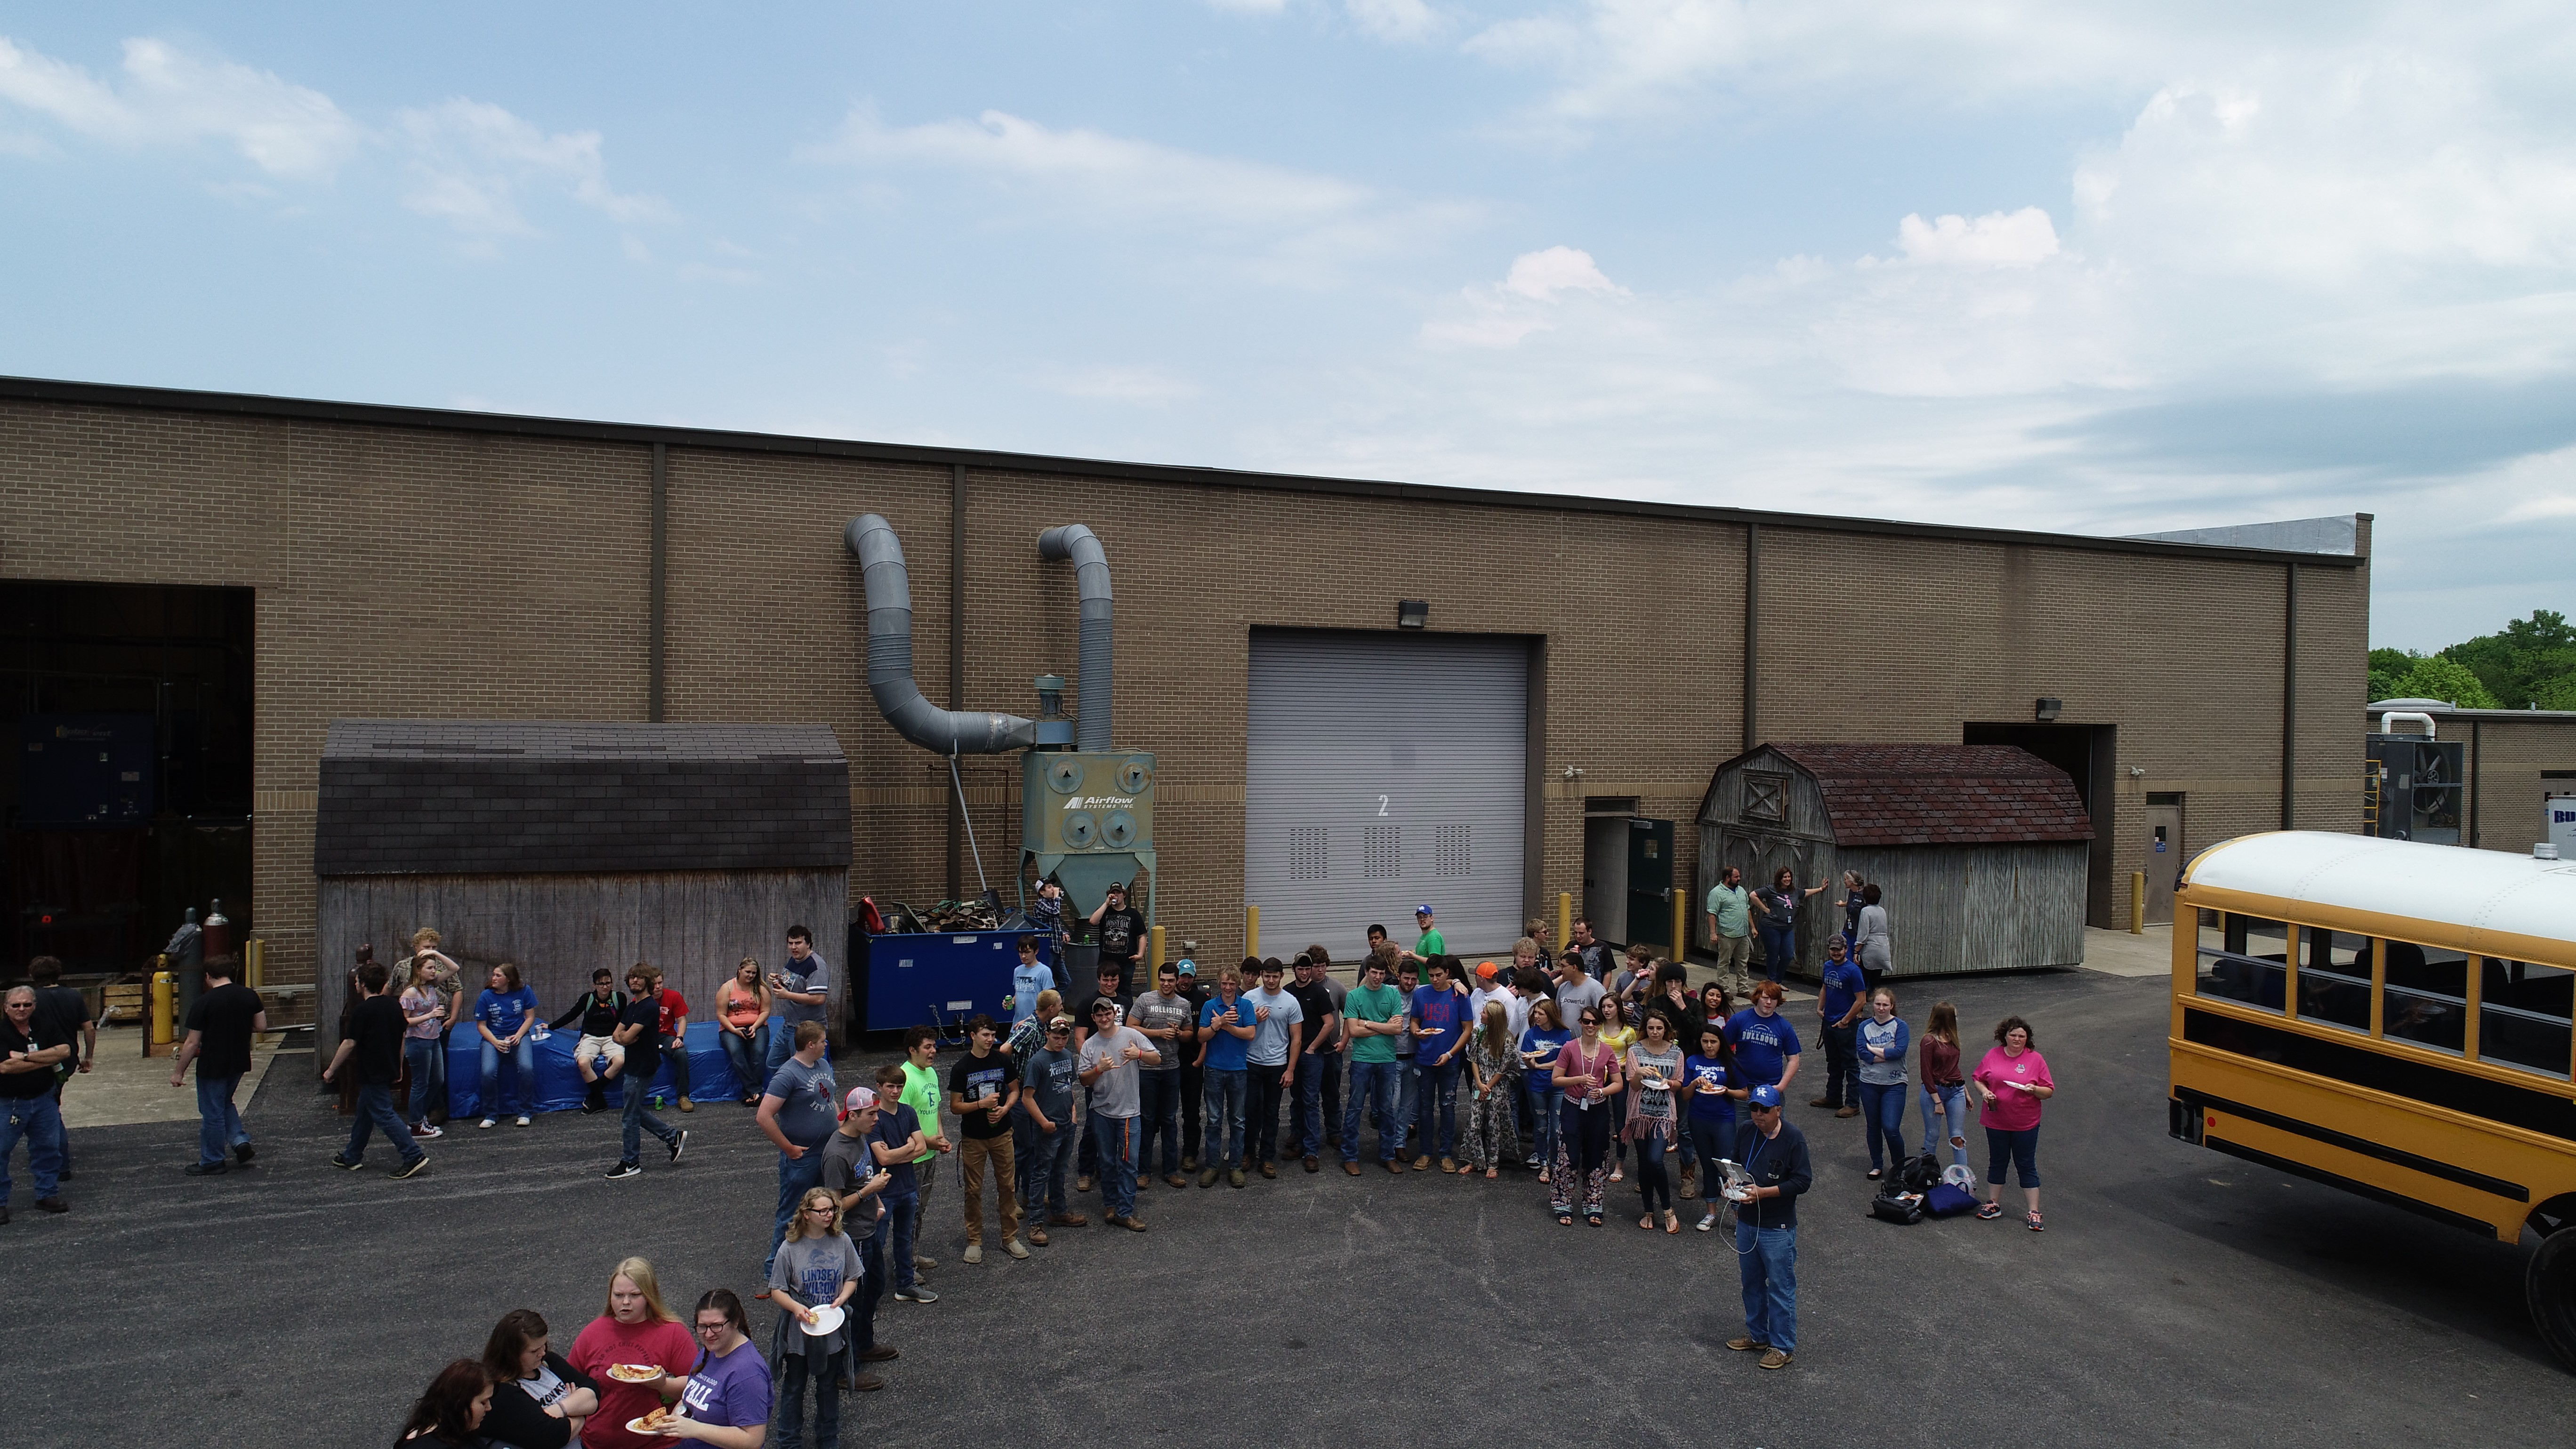 A celebration with food, fun, and a drone demonstration by Rick Mercader was an excellent ending to the school year for the students and staff at Clinton County Area Technology Center.